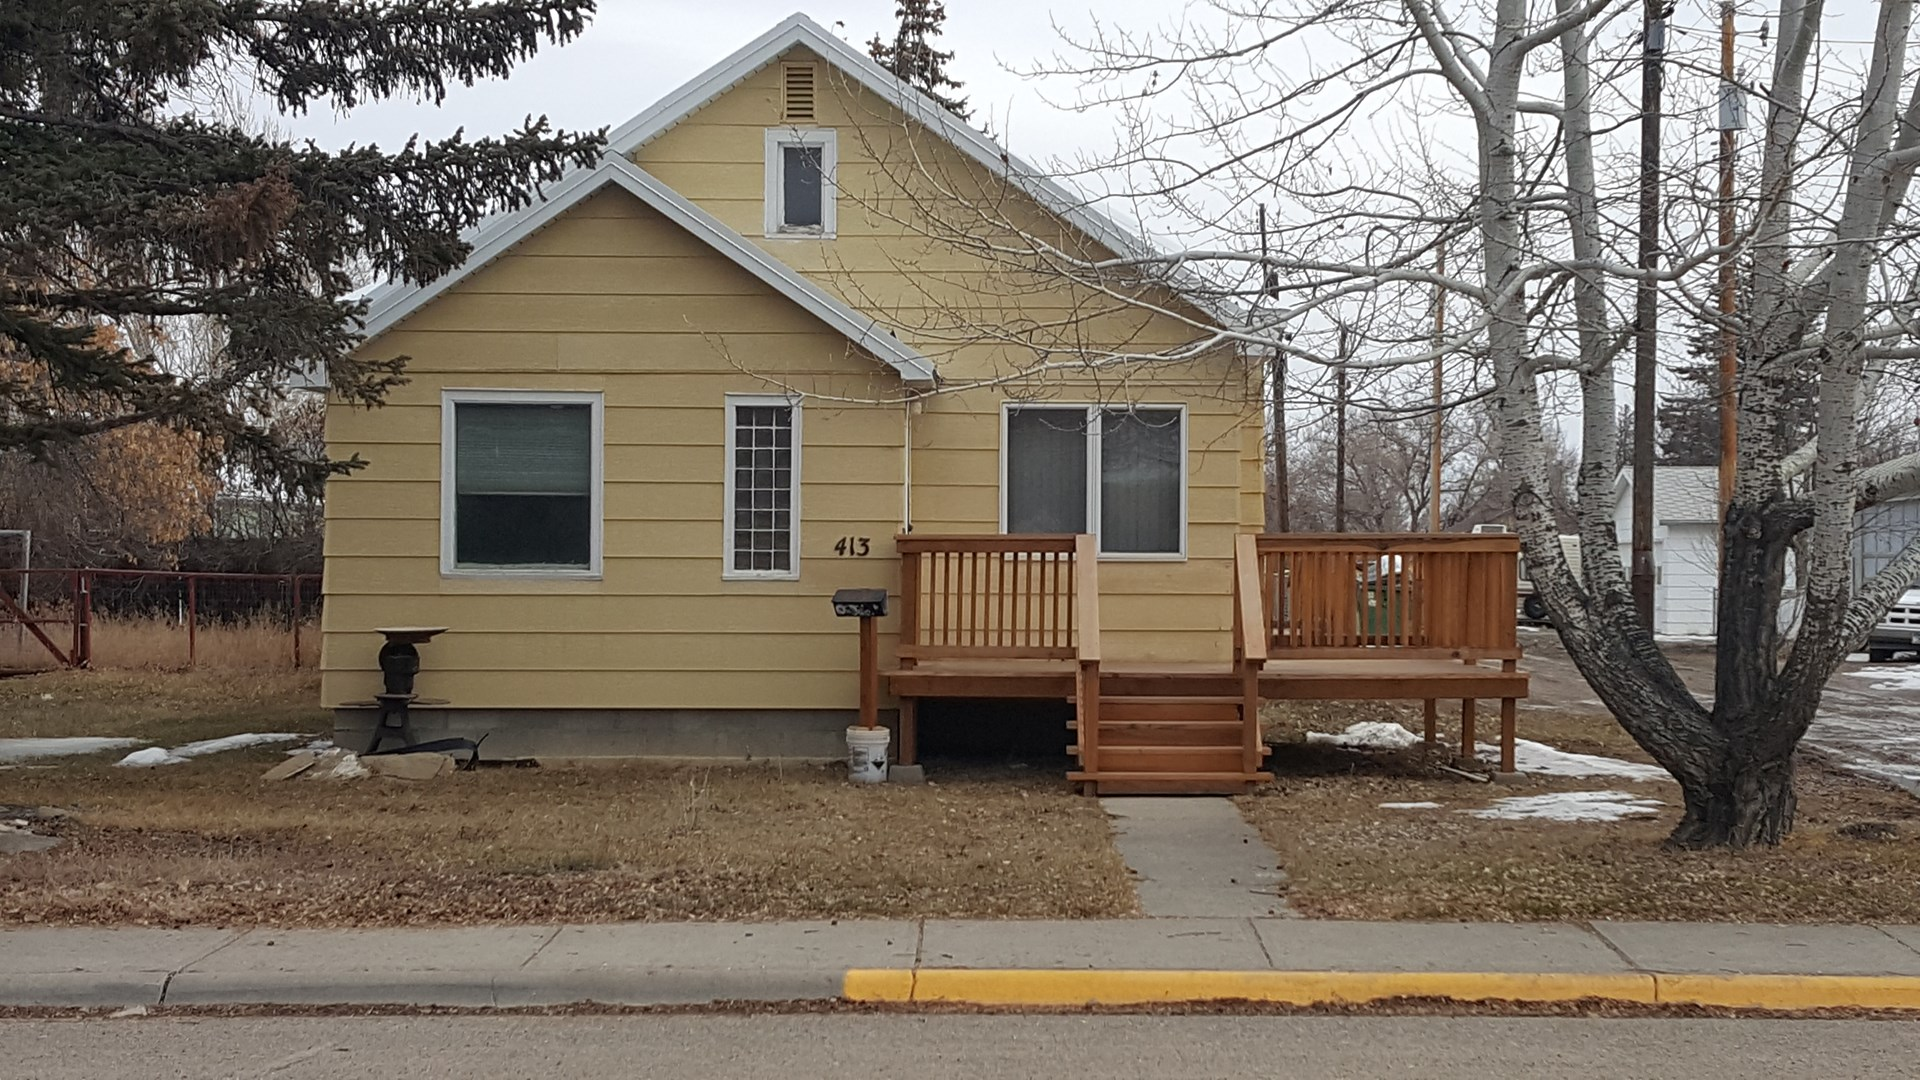 CONRAD, MT / 3 BED / 2 BATH / $120,000